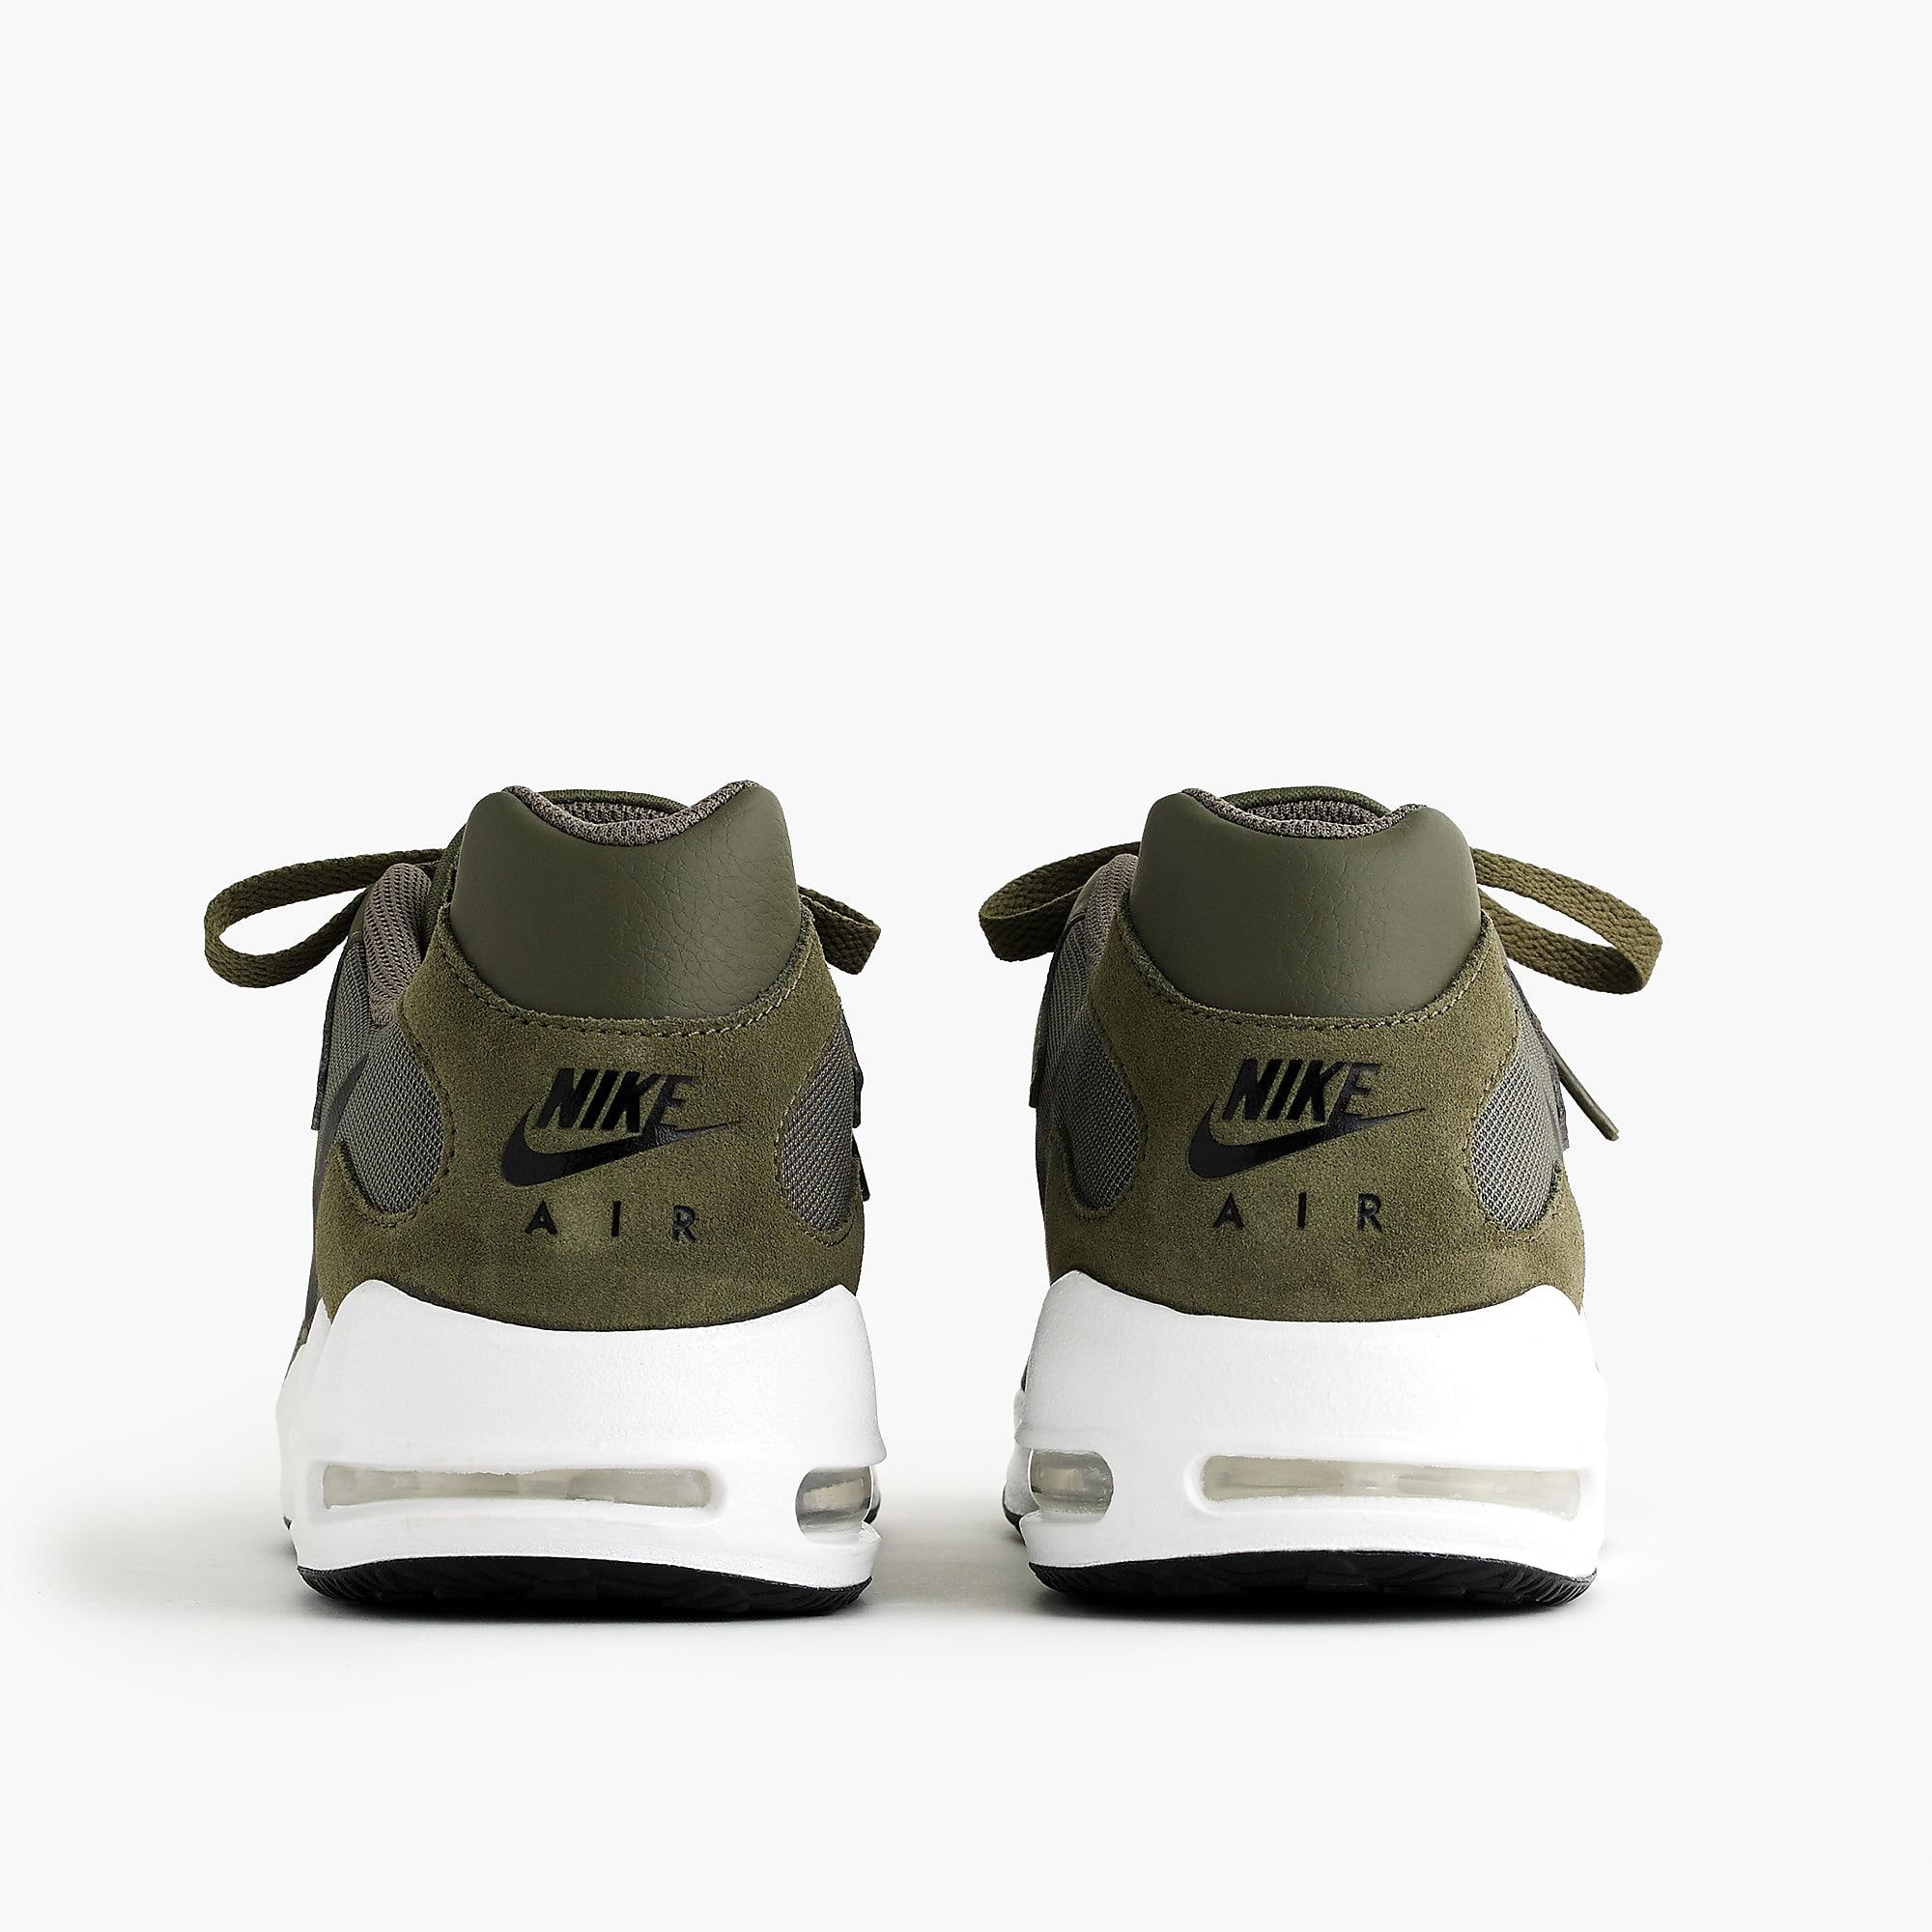 Nike Suede ® Air Max Guile In Olive in Green for Men - Lyst